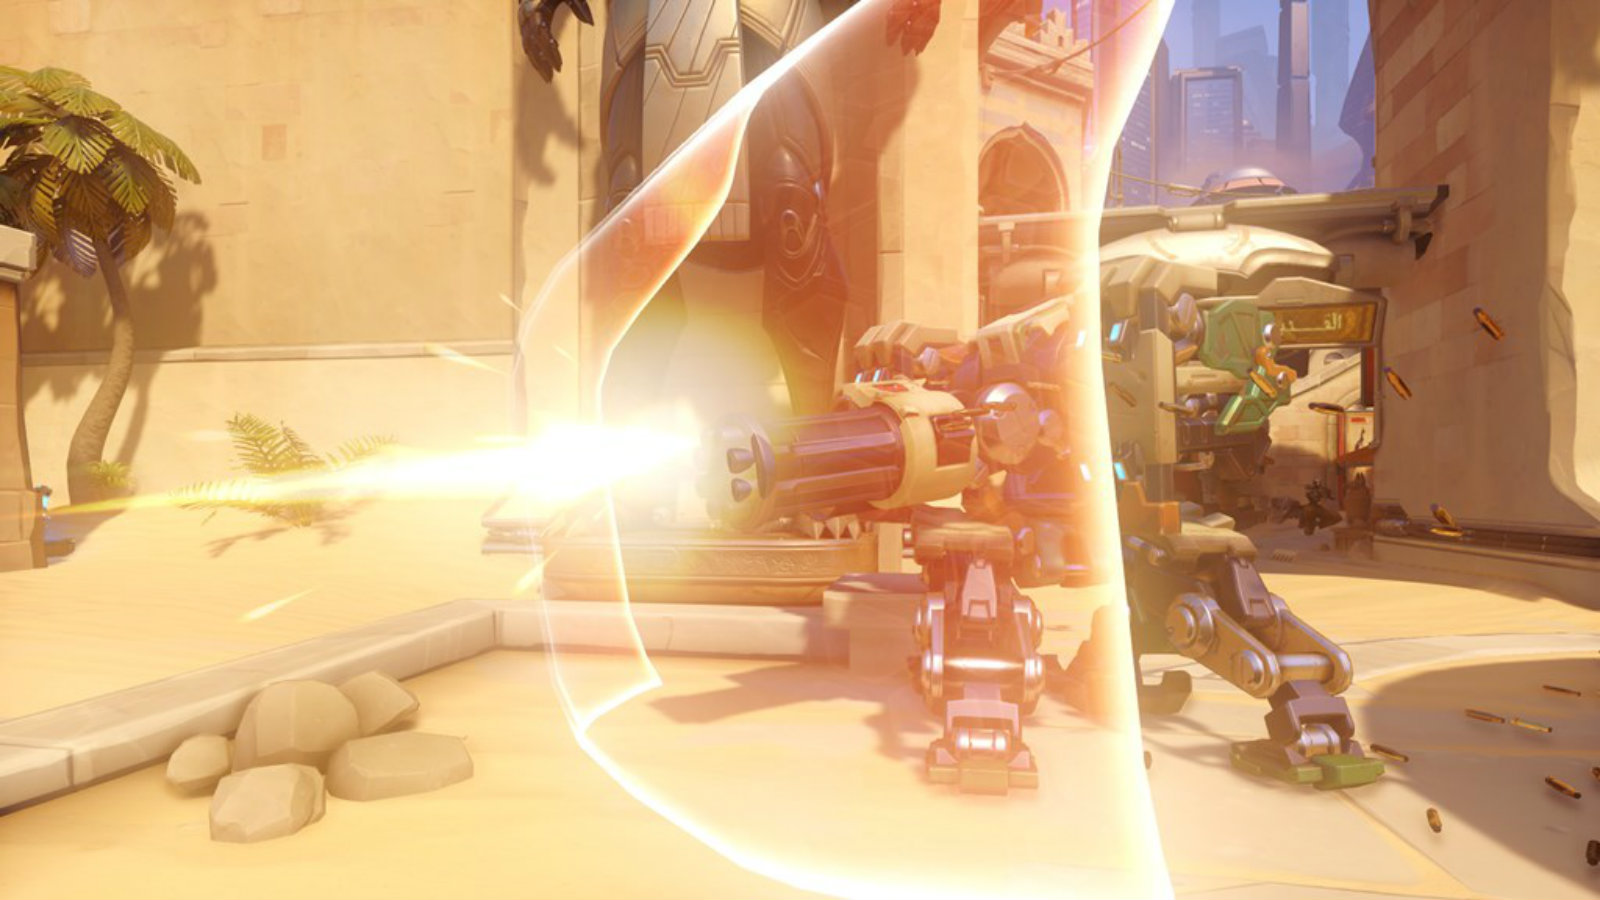 Bastion with his shield back in Overwatch beta